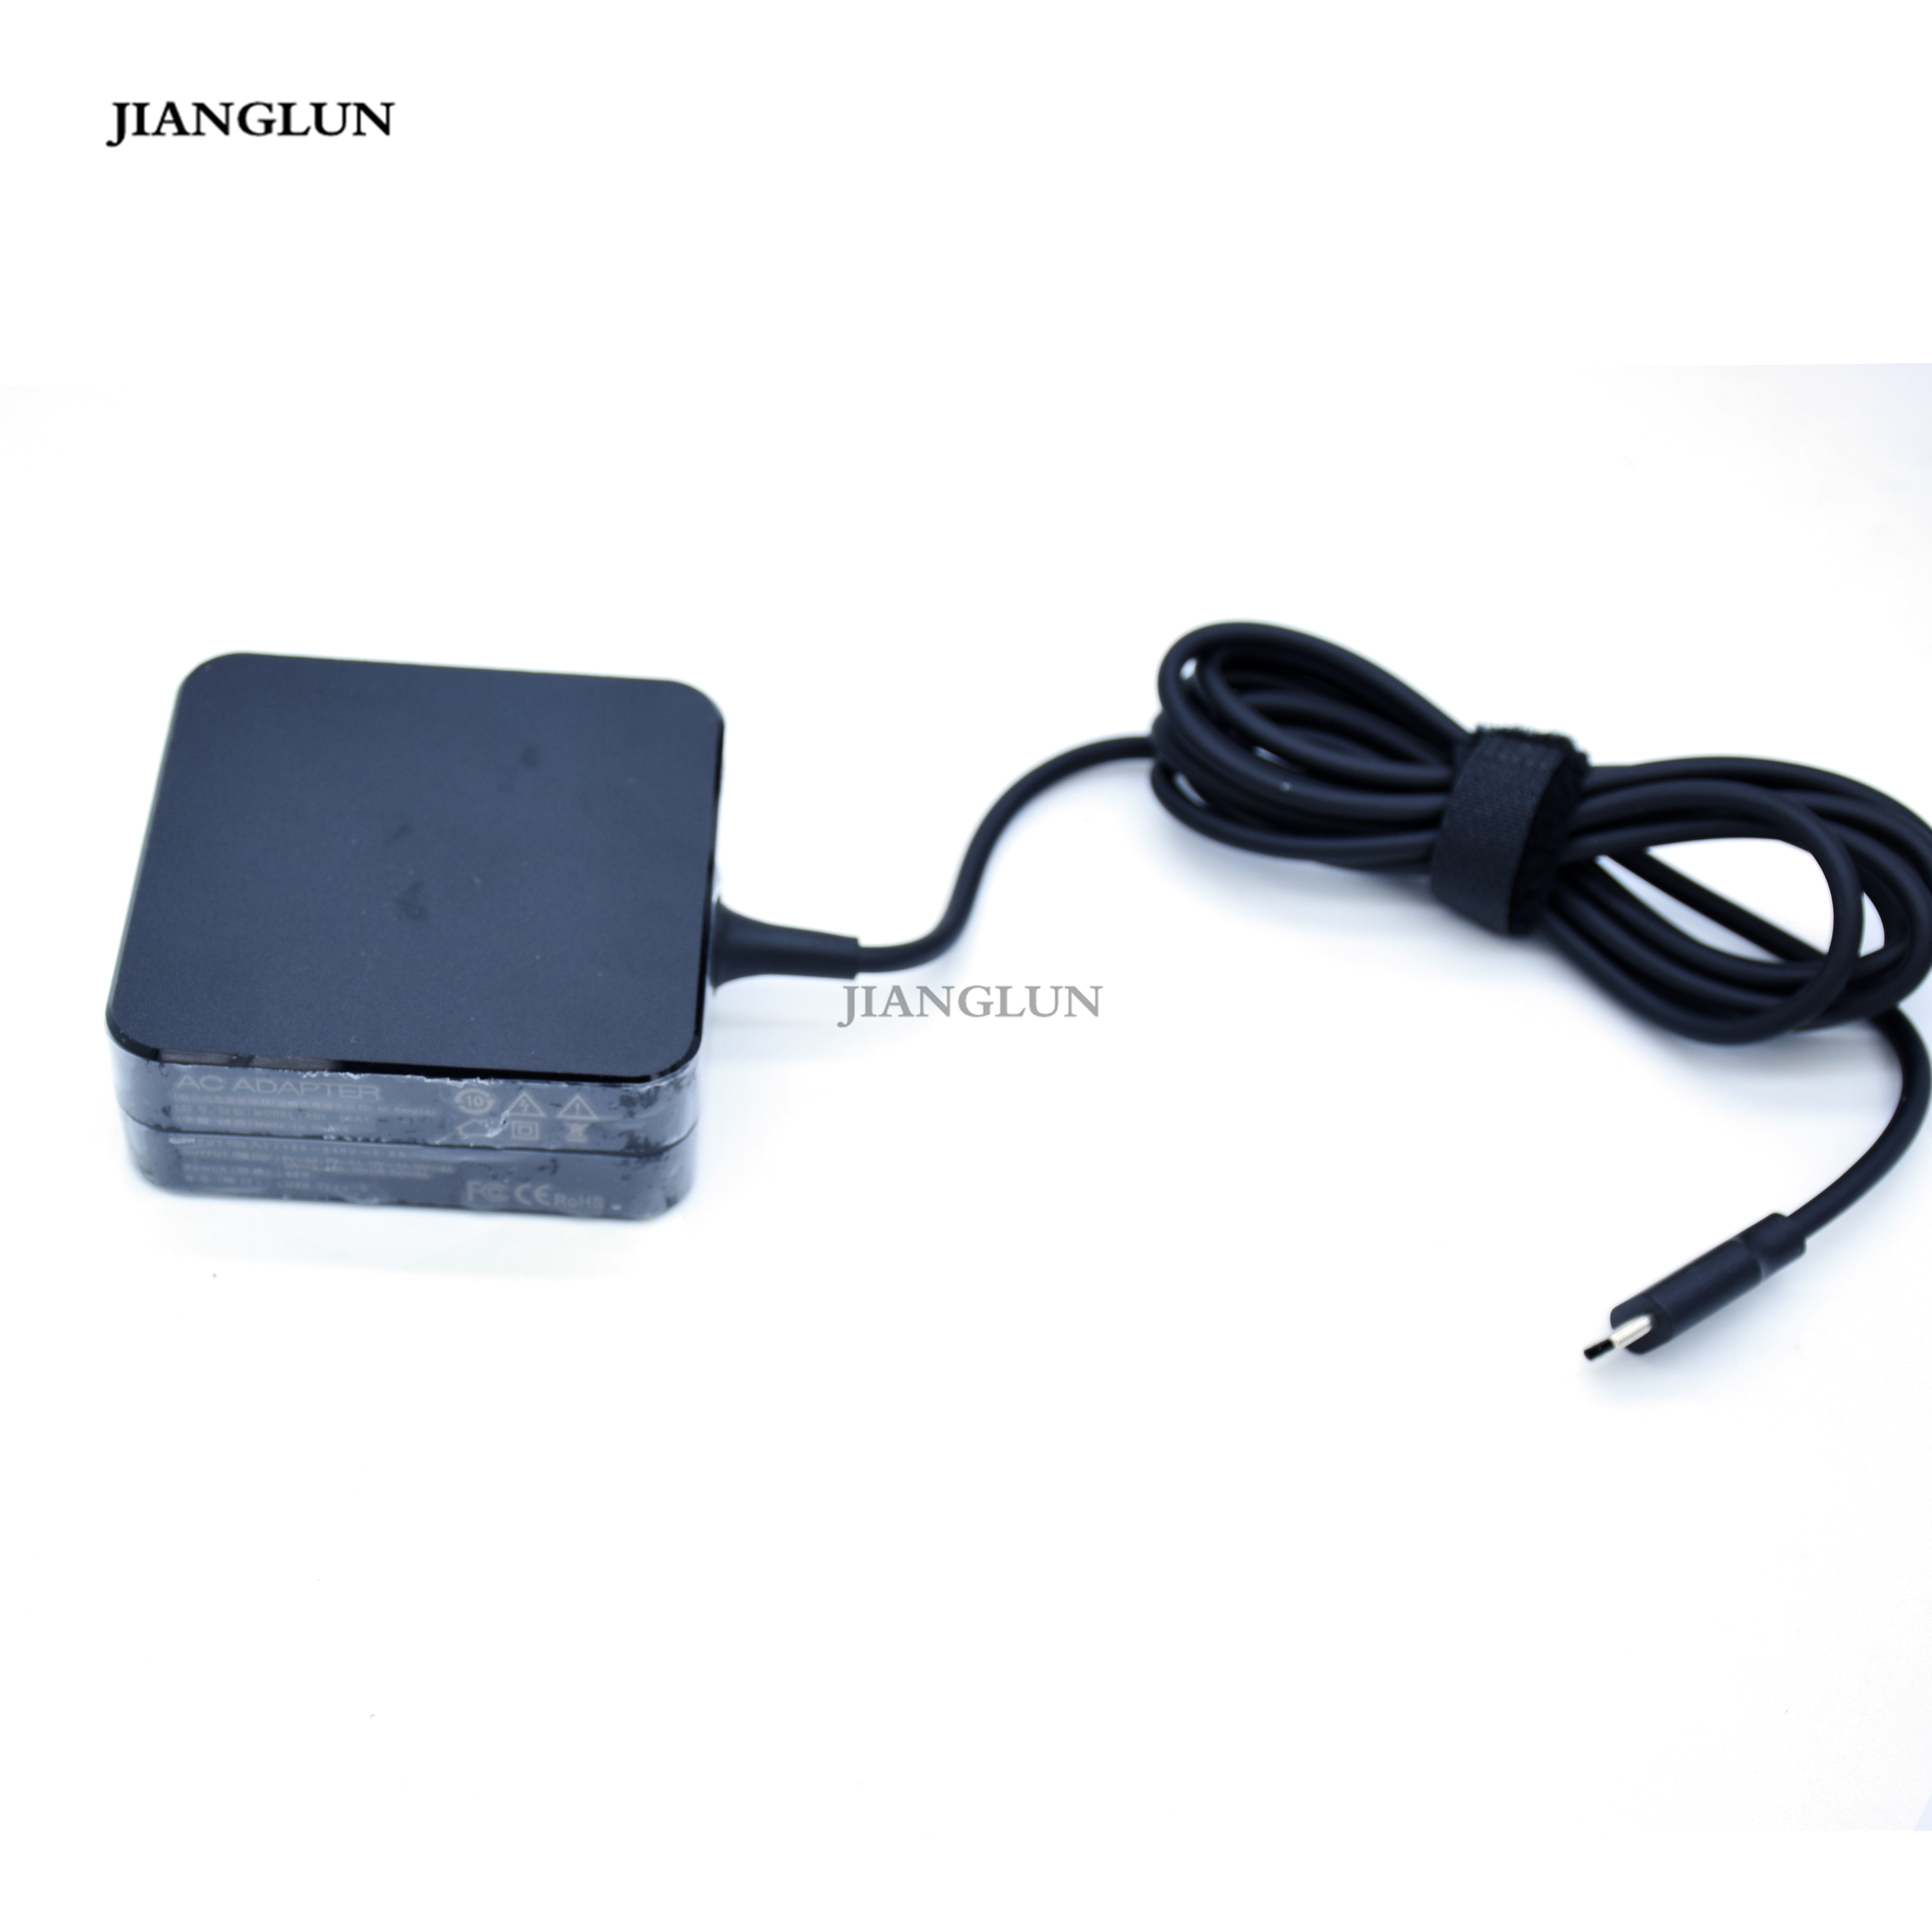 JIANGLUN Laptop USBC Charger For HP Spectre X360 Convertible 13-ae054TU